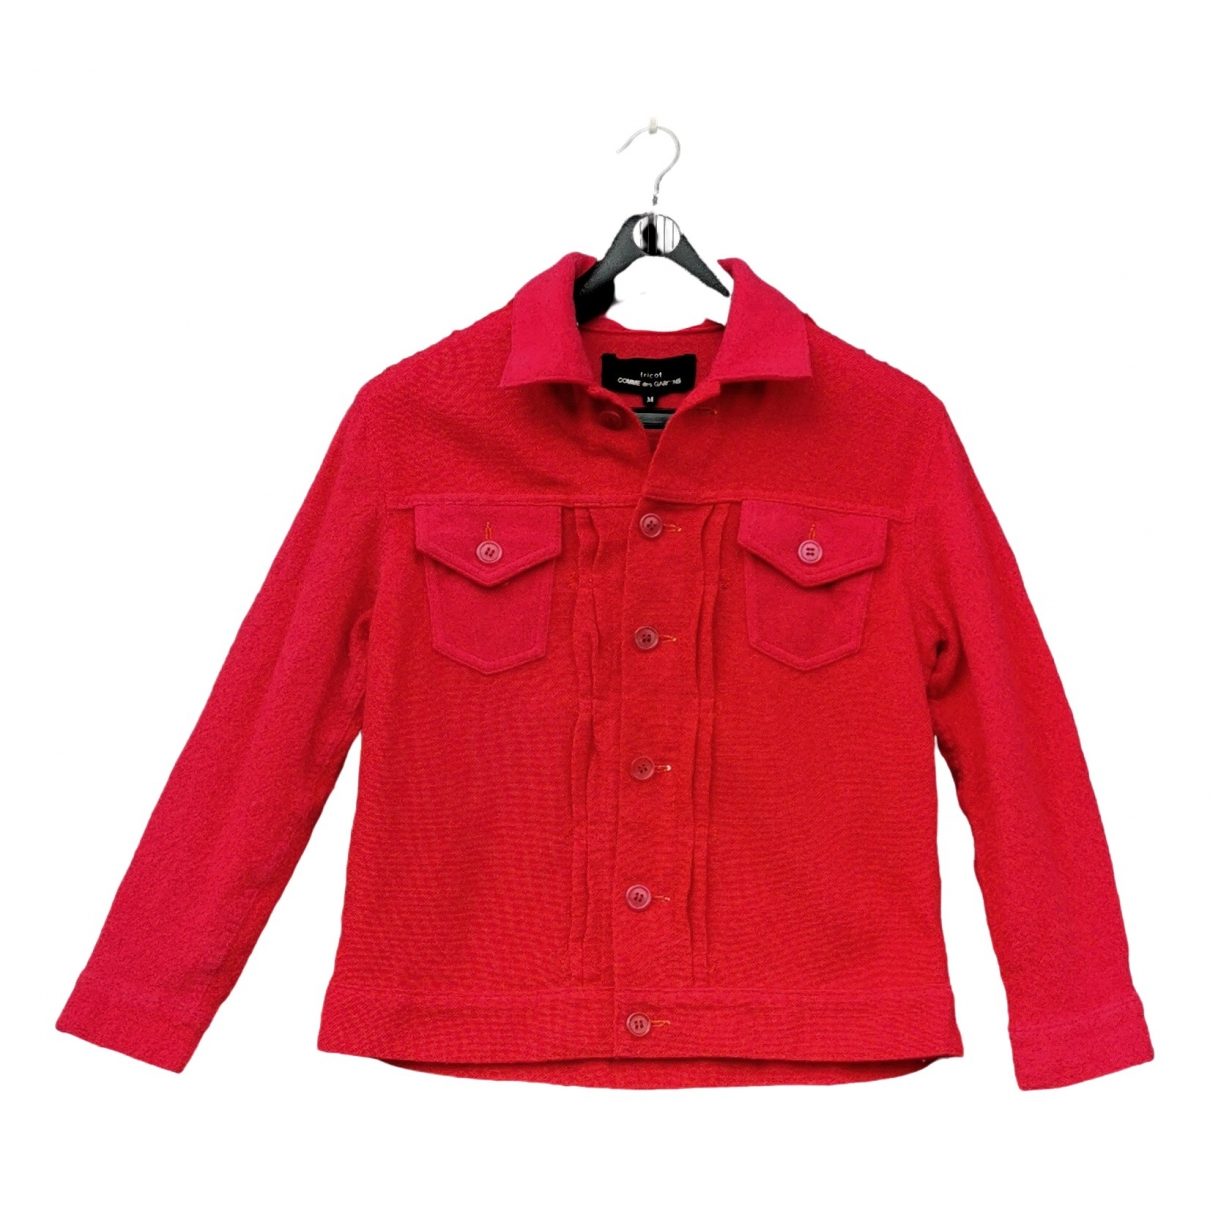 Comme Des Garcons \N Red Wool jacket for Women M International